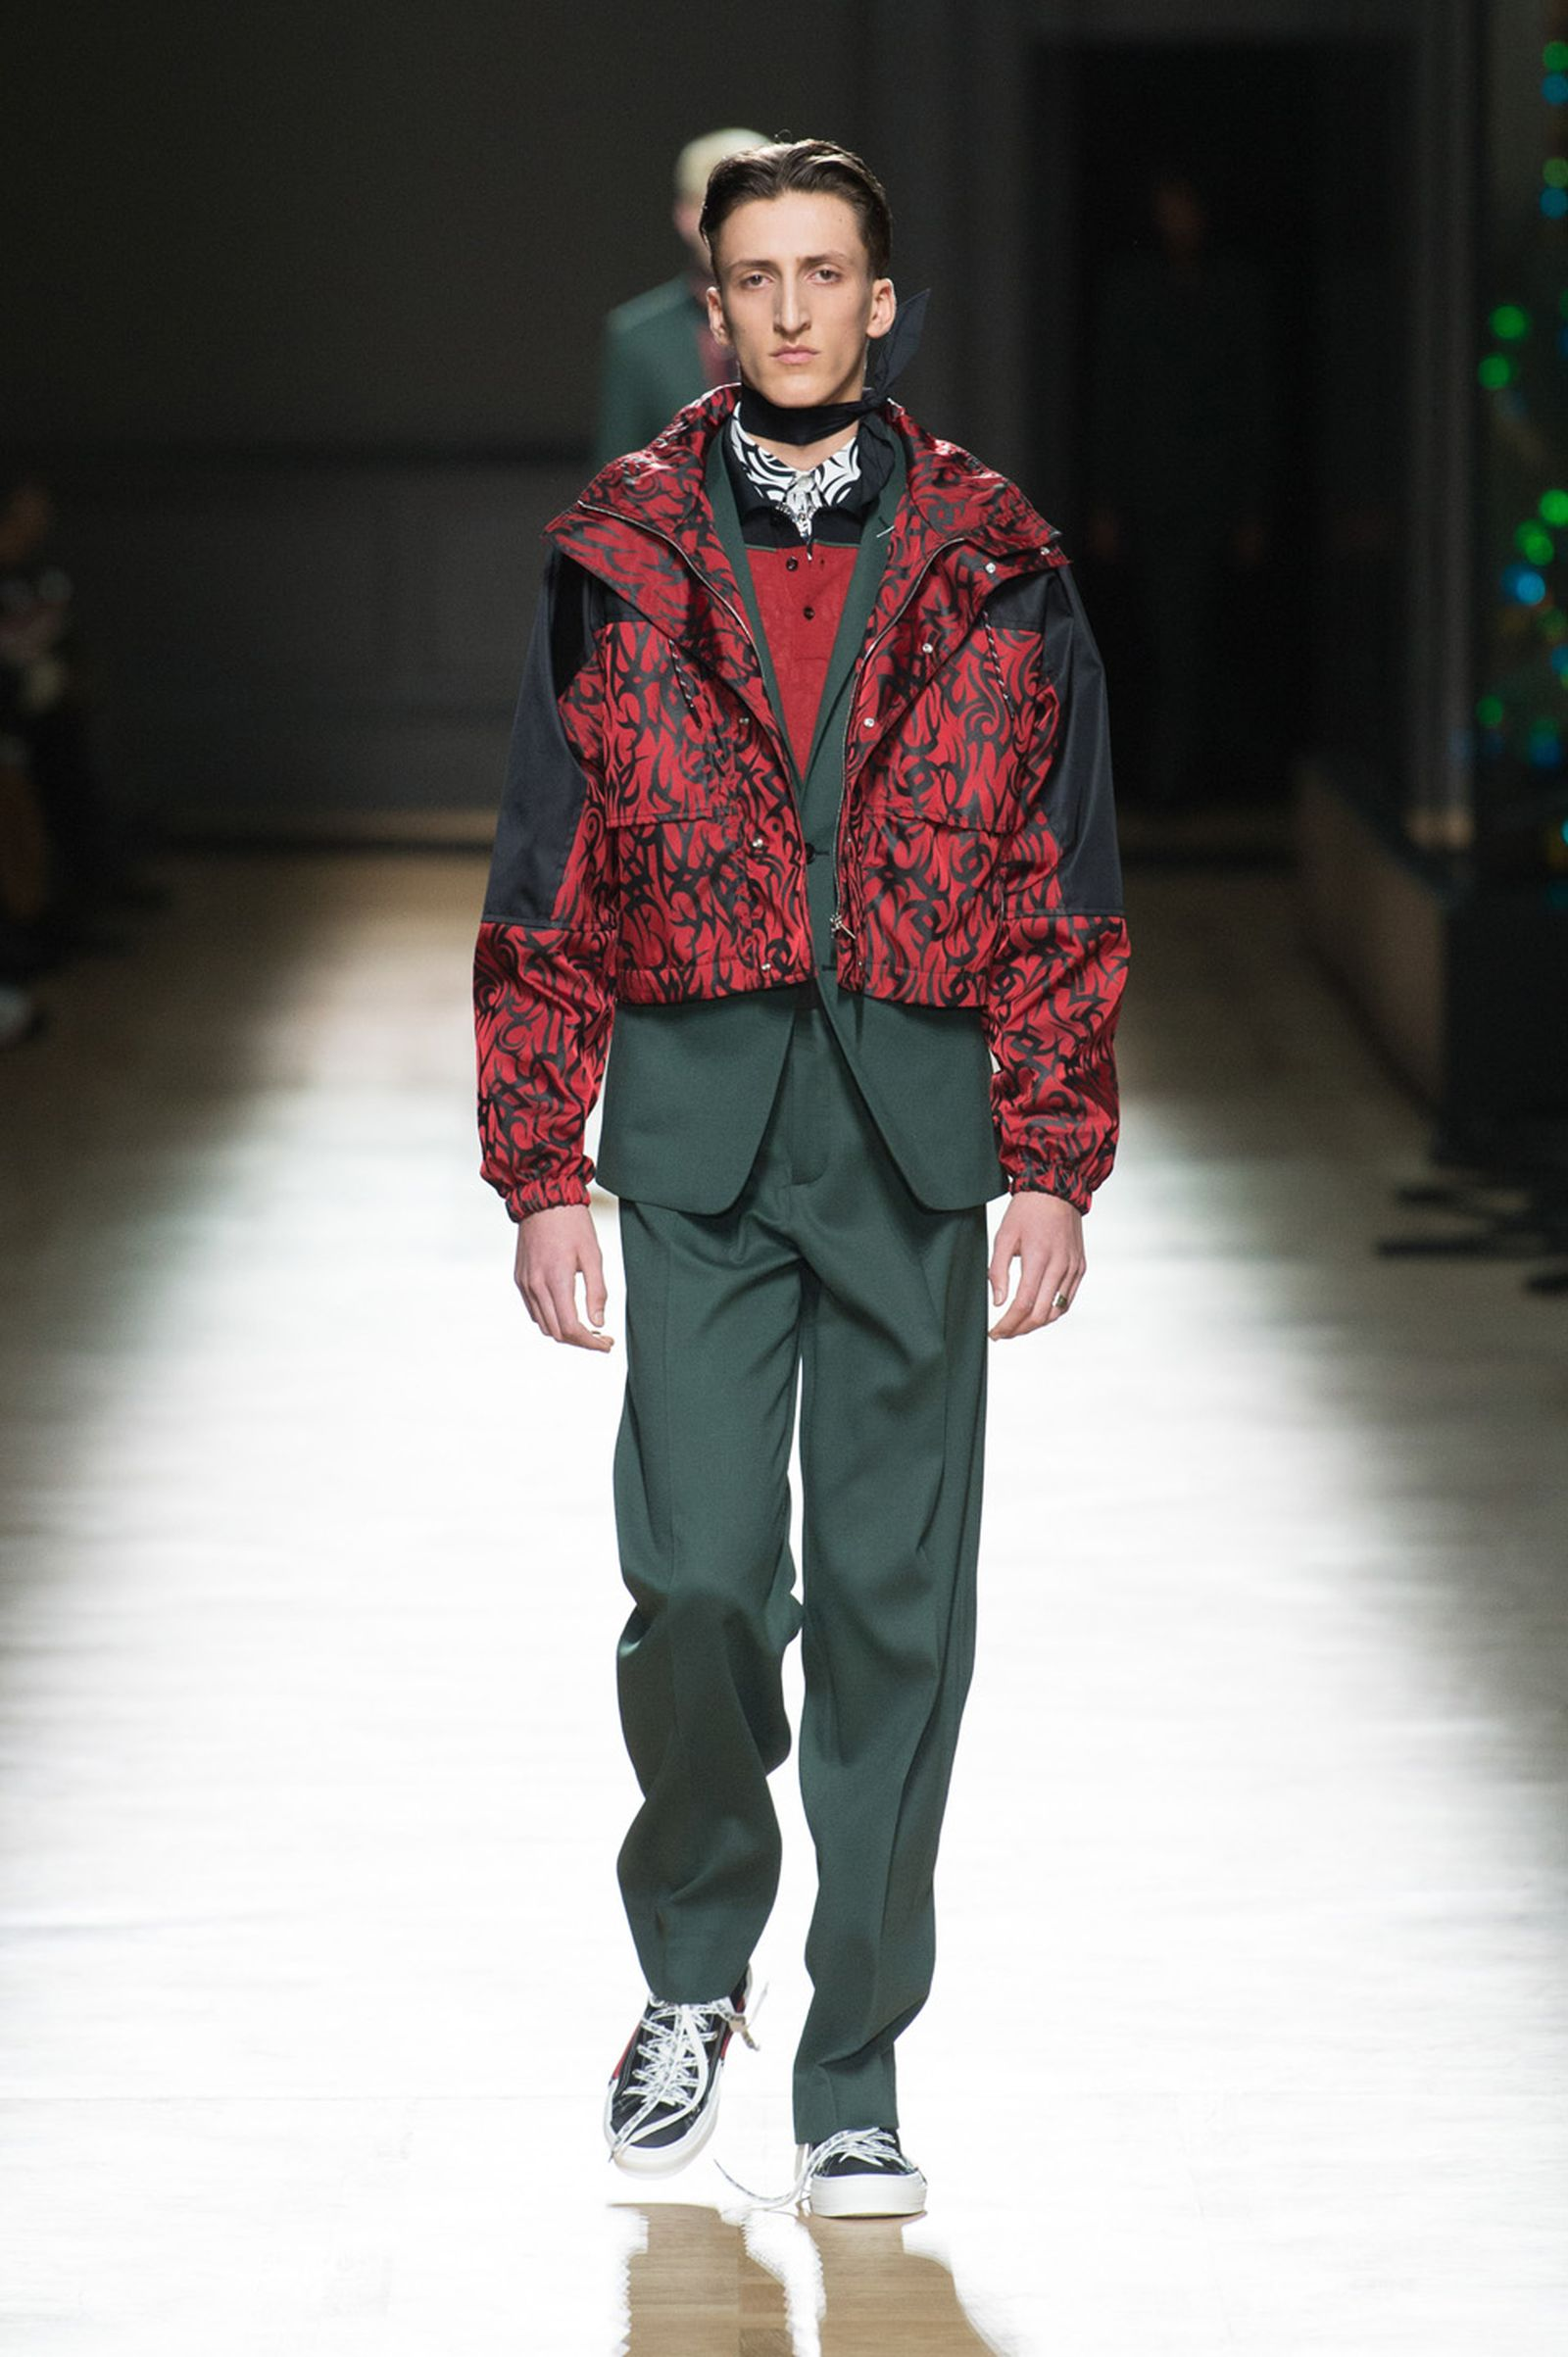 DIOR HOMME WINTER 18 19 BY PATRICE STABLE look24 Fall/WInter 2018 runway